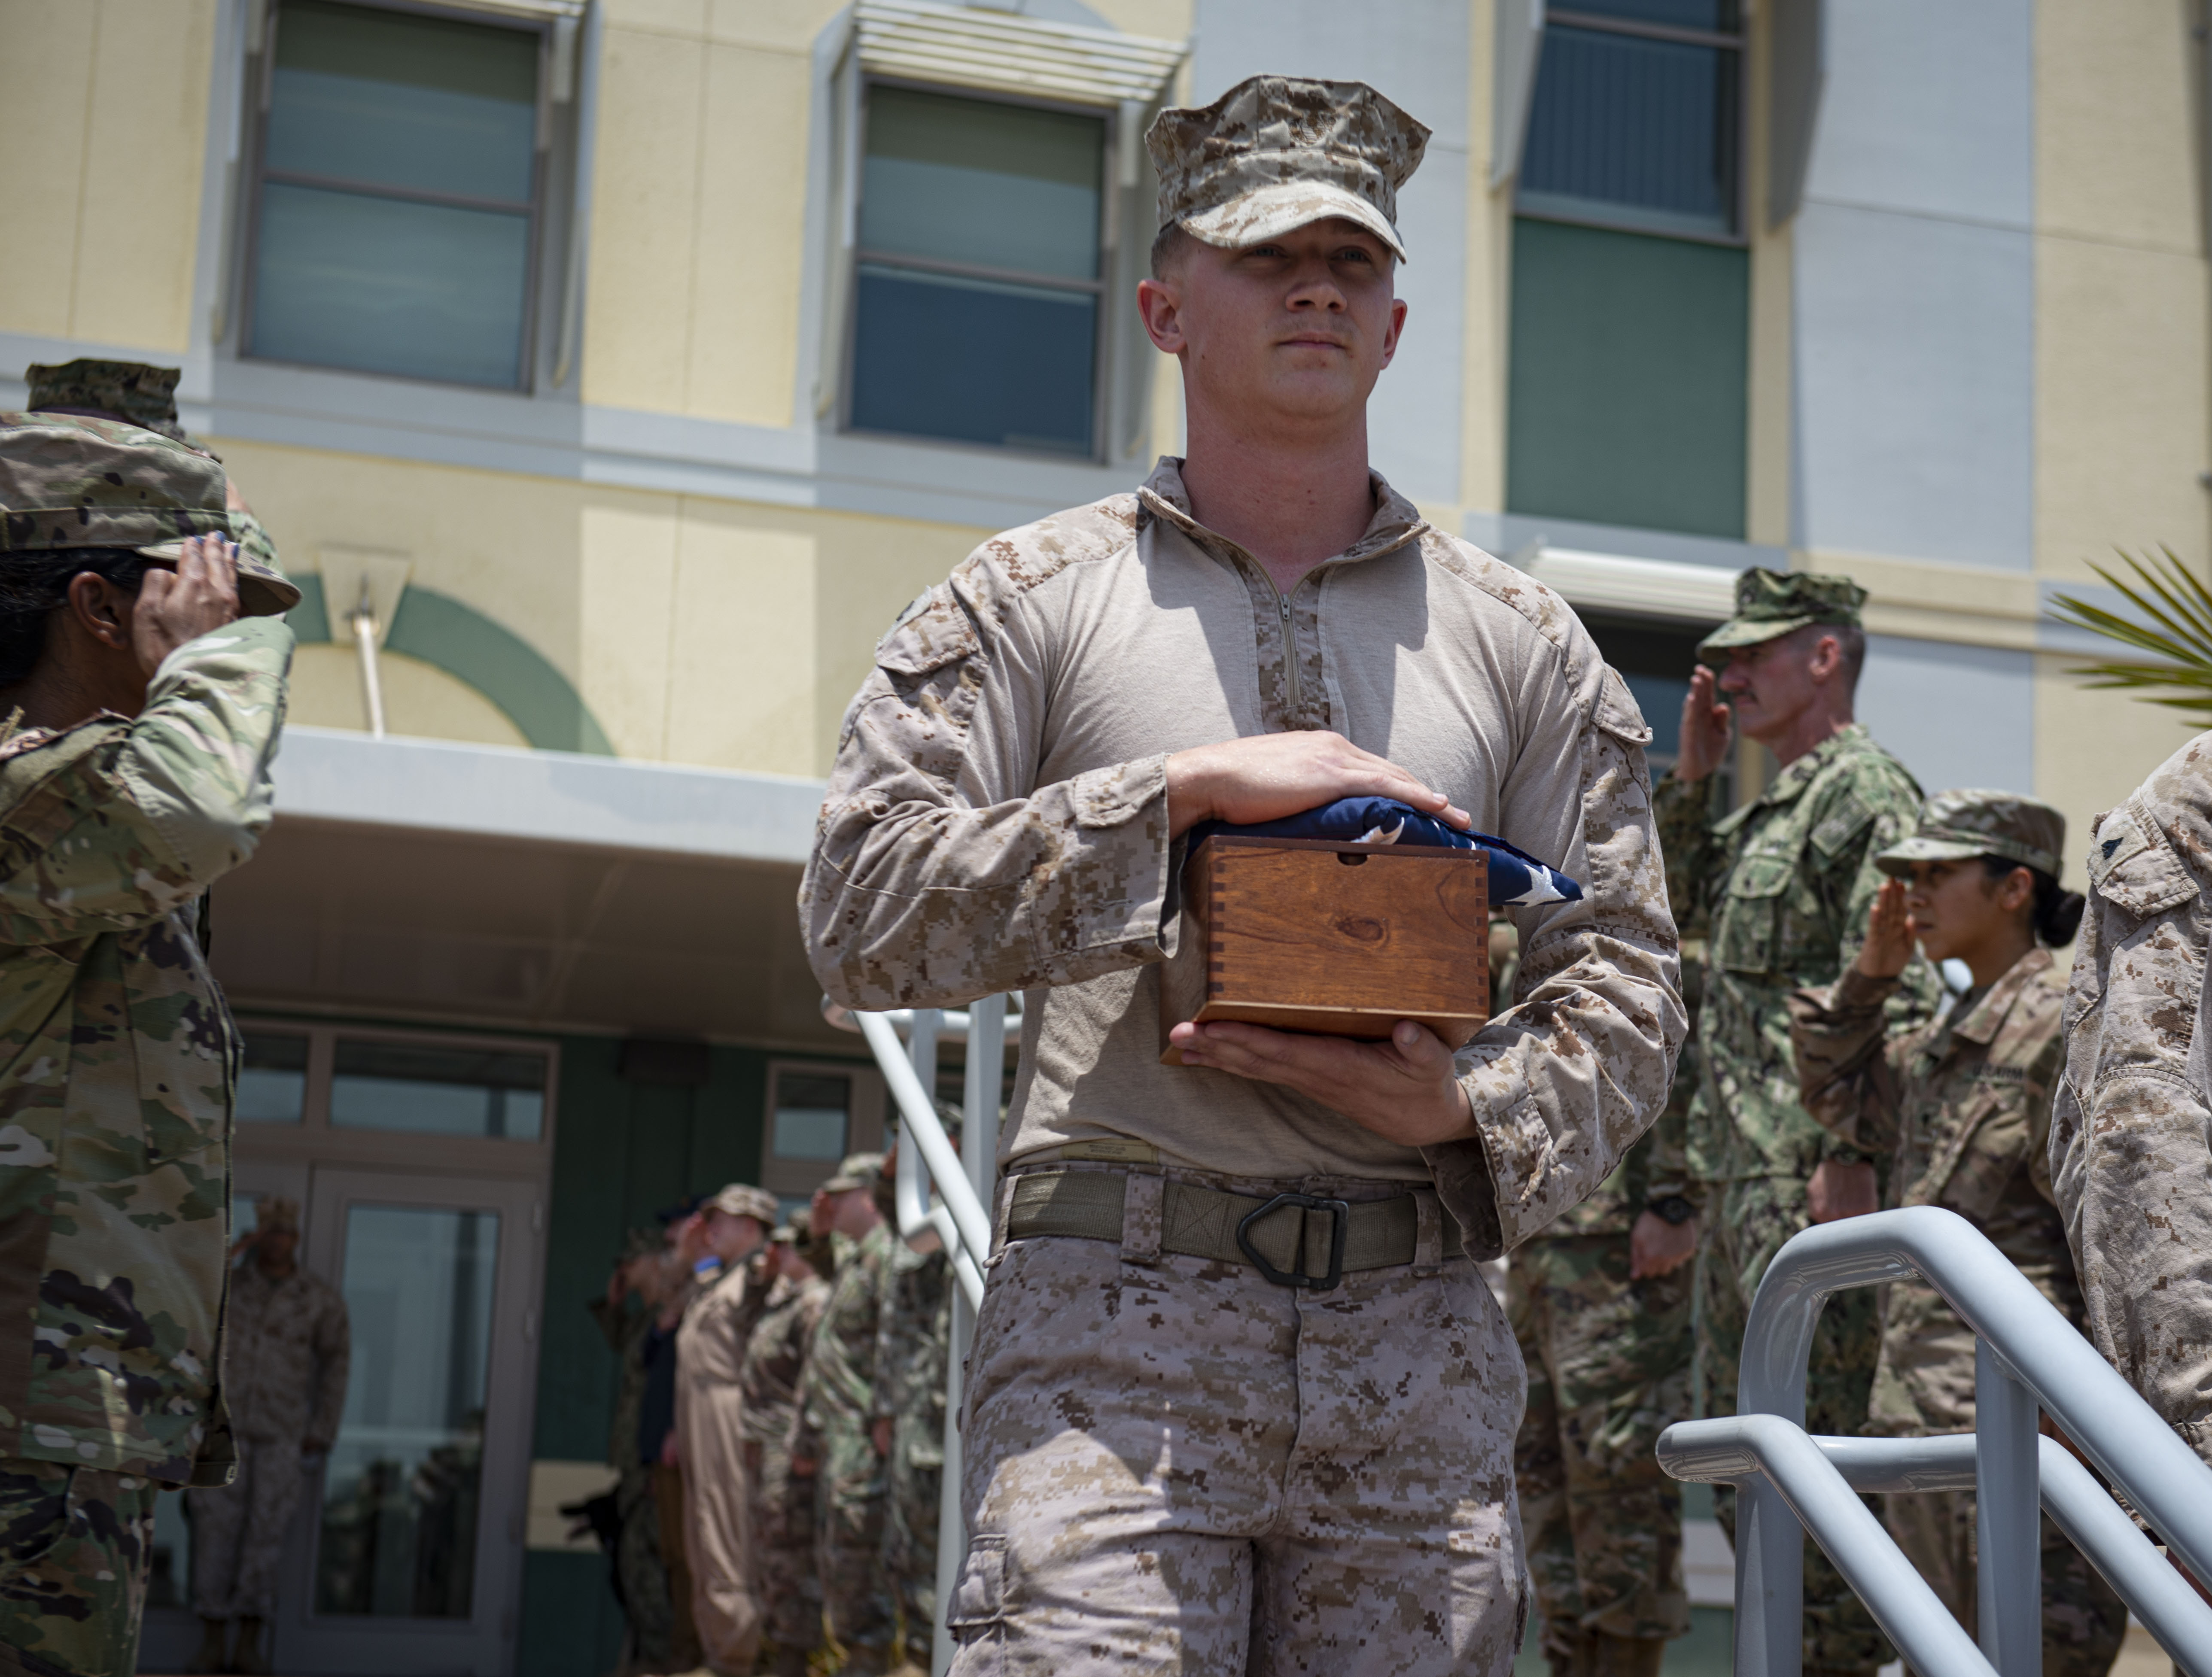 U.S. Marine Corporal Cameron Woodside, military working dog handler, assigned to Combined Joint Task Force-Horn of Africa (CJTF-HOA), holds the remains of Aarno, military working dog, during a dignified transfer at Camp Lemonnier, Djibouti (CLDJ), Sept. 19, 2019. Aarno passed away of natural causes while assigned to CJTF-HOA. (U.S. Air Force photo by Senior Airman Gabrielle Spalding)